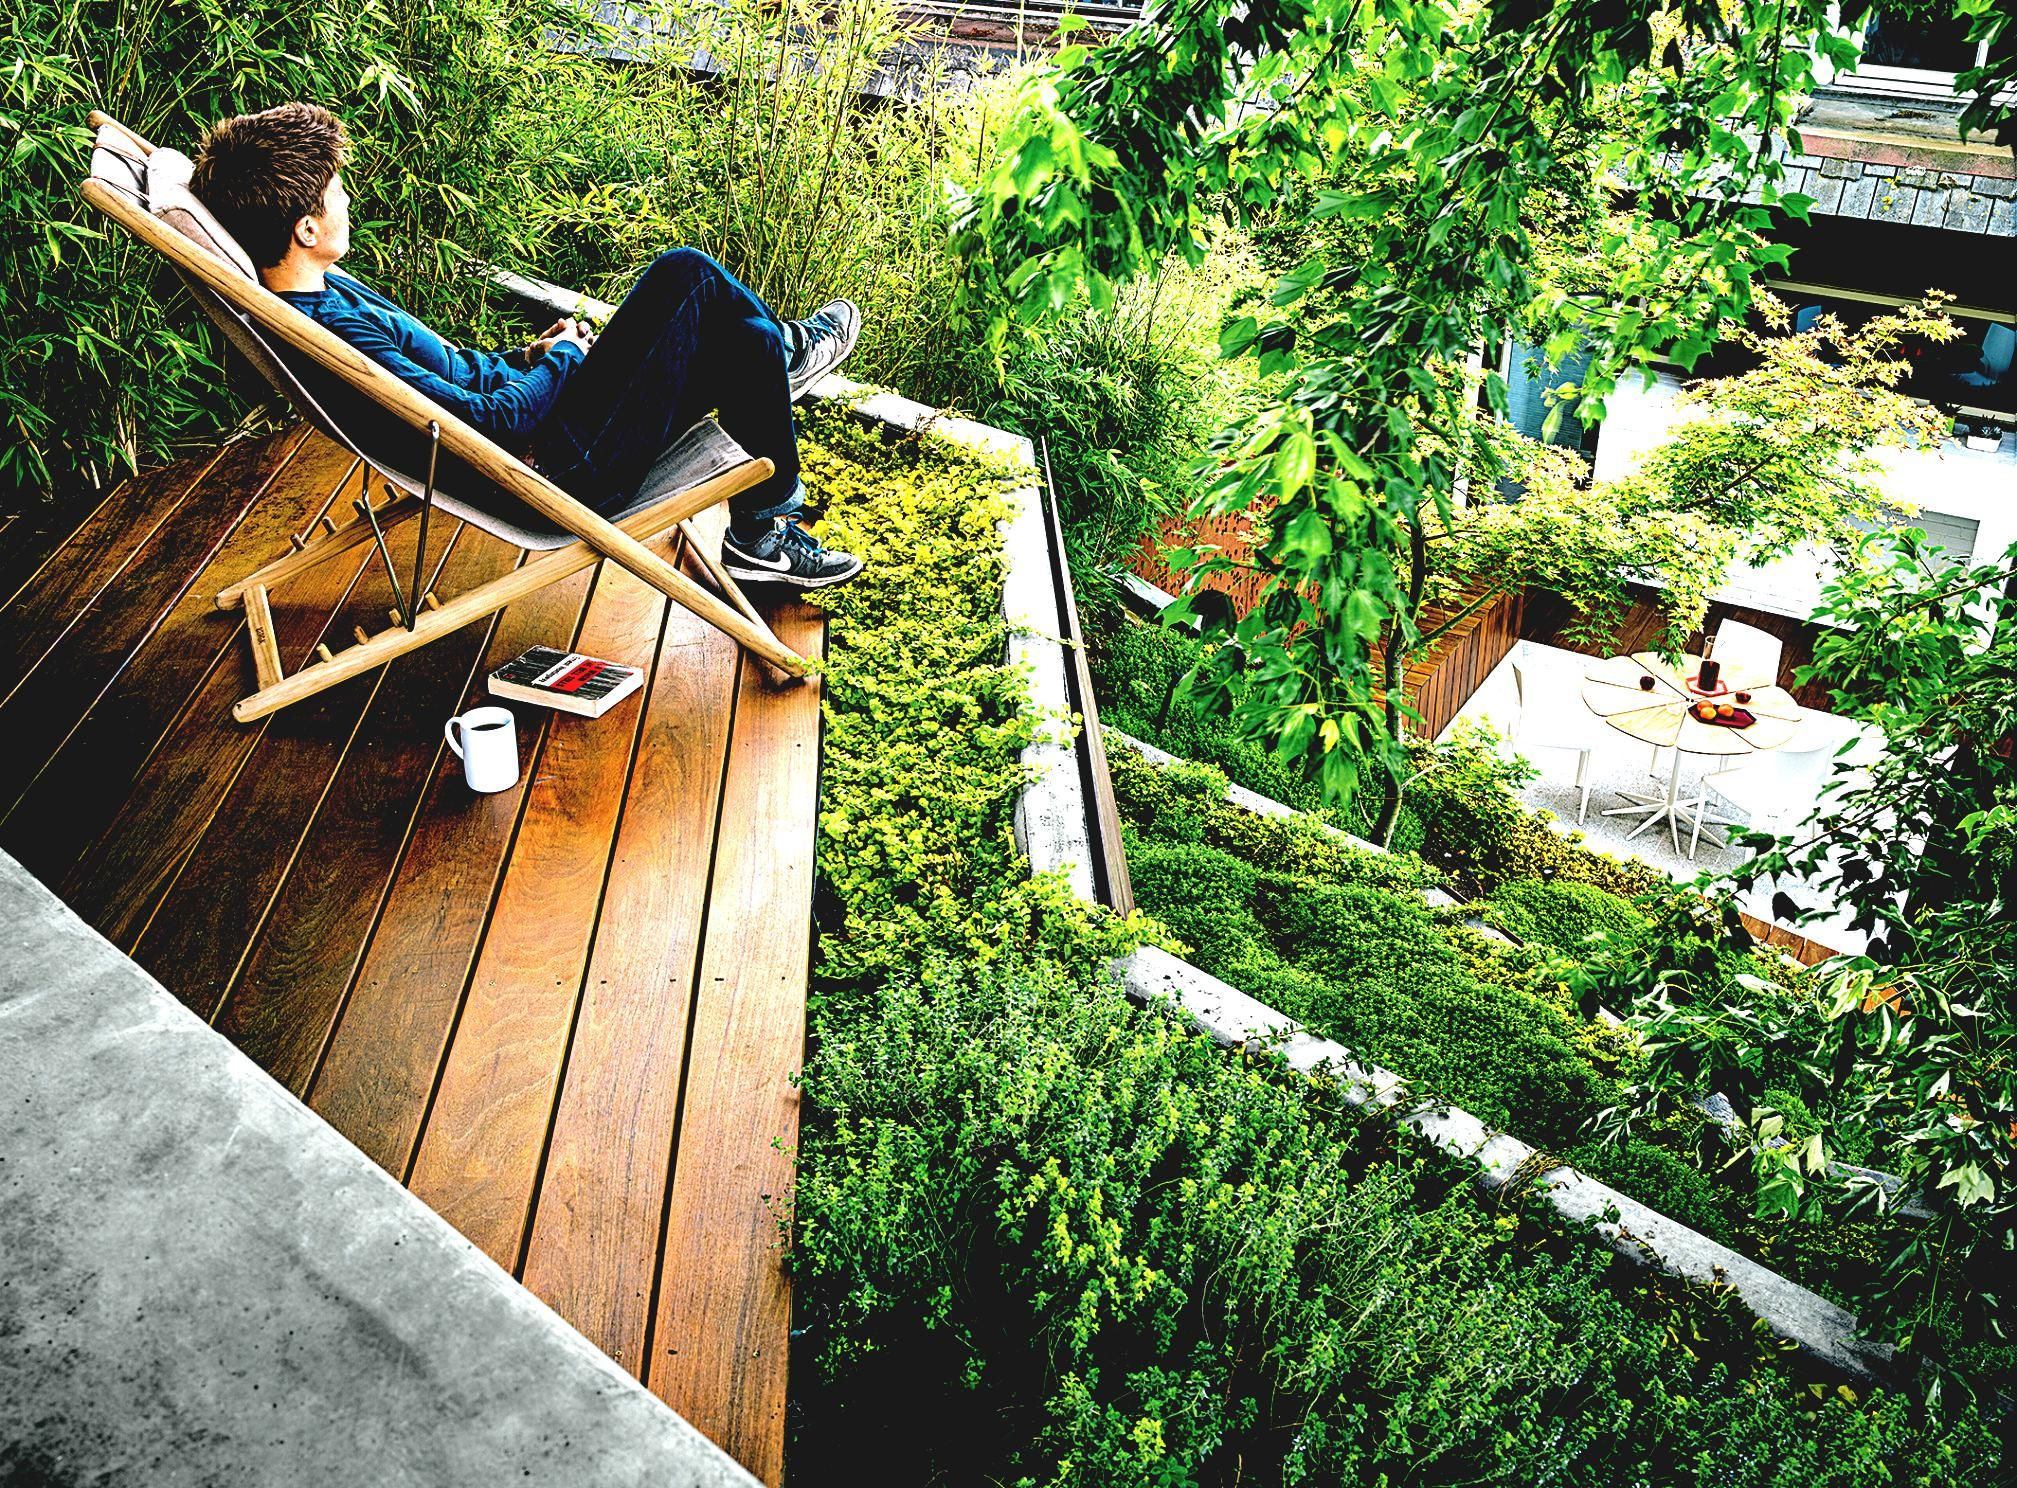 landscape ideas for steep backyard hill the garden inspirations charming urban gardens dwell landscaping on a hillside haven outdoor easy chair terrace - Urban Garden